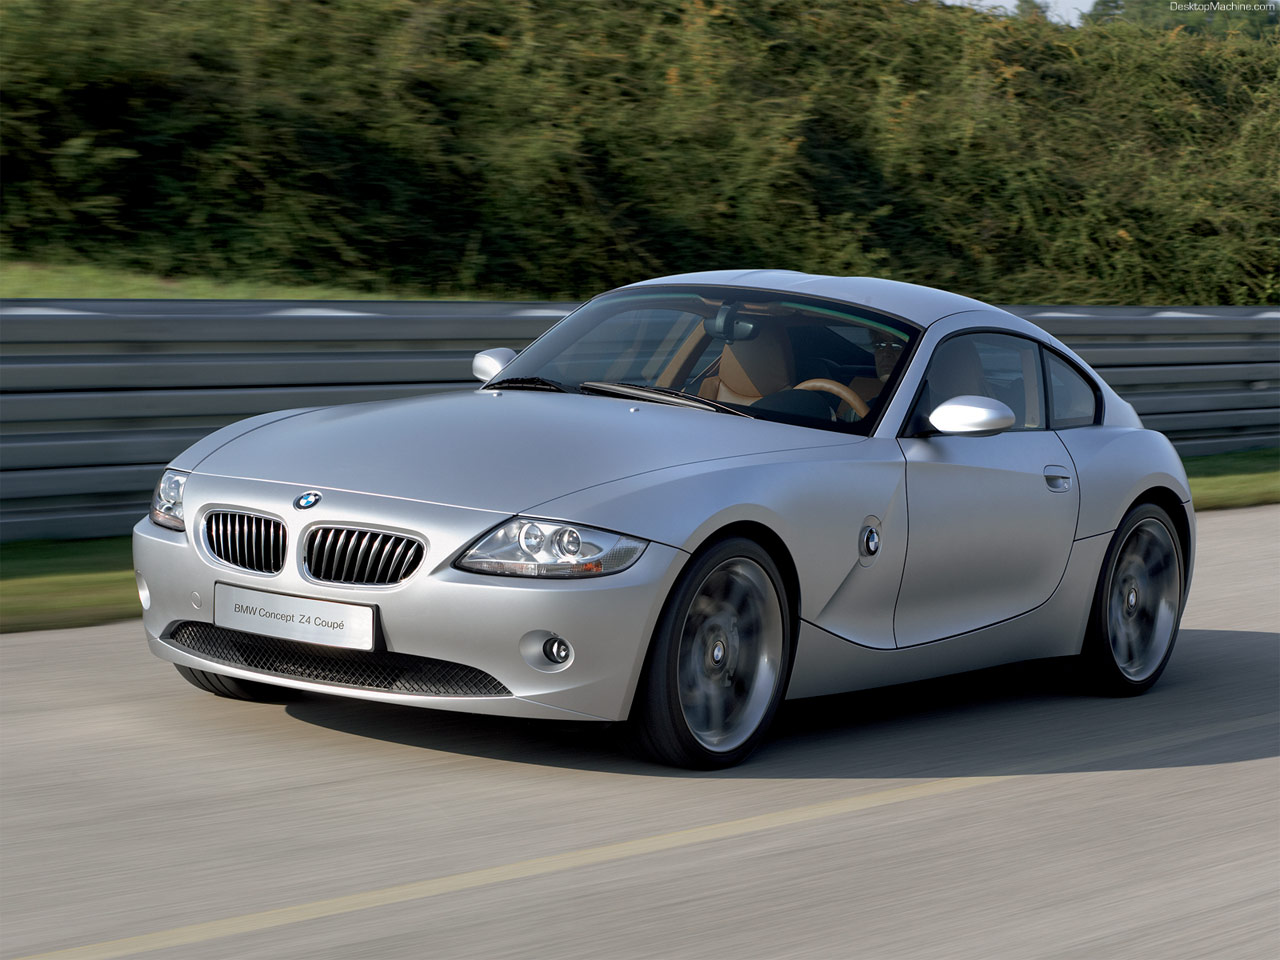 Bmw Z4 Coupe Concept 1280x960 B40 Tapety Na Pulpit